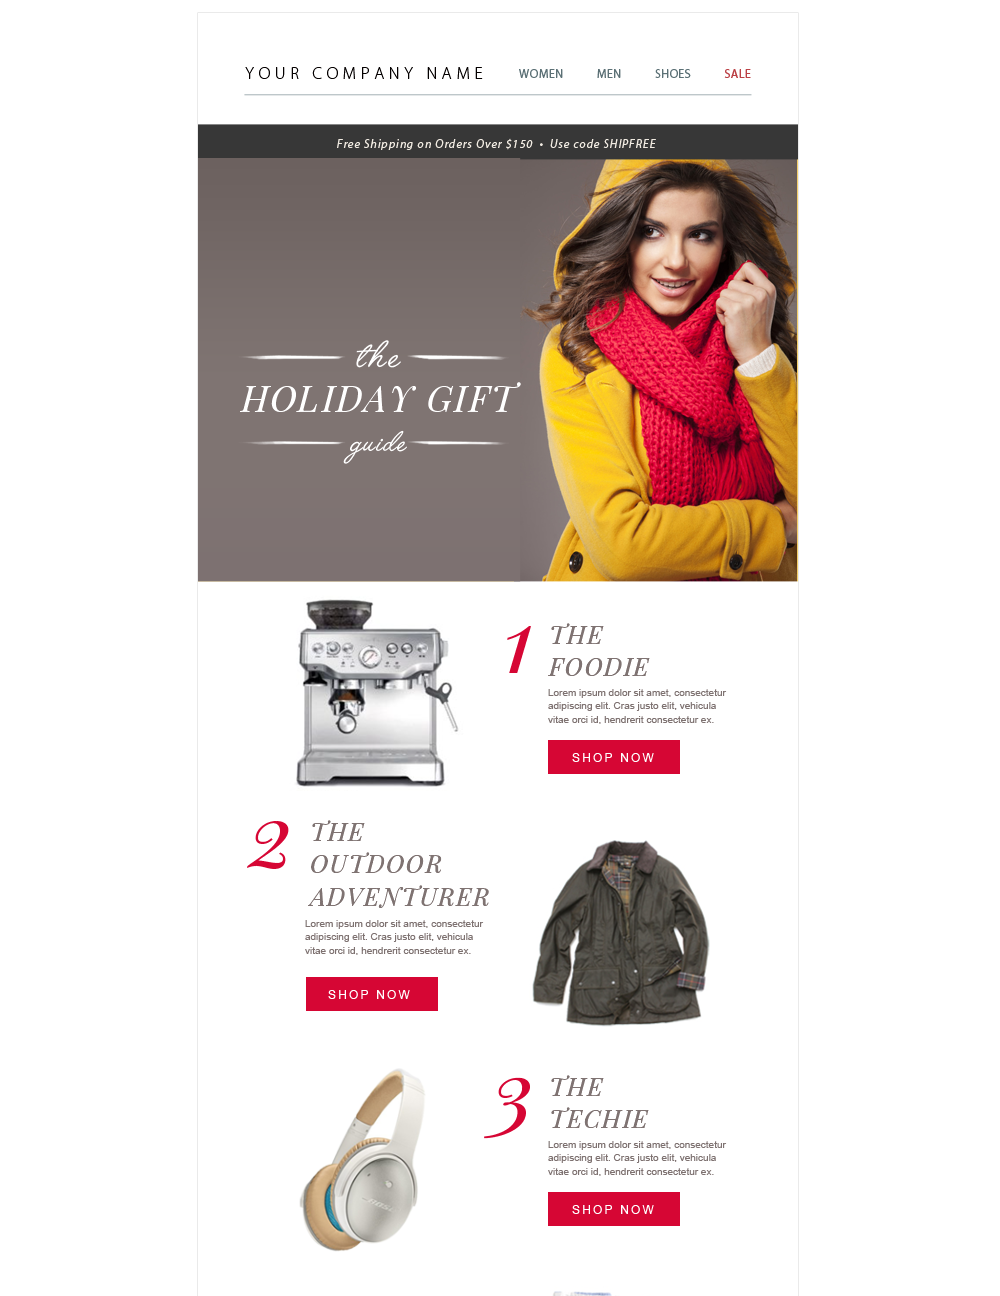 e-commerce email template design psd - by stephanie design